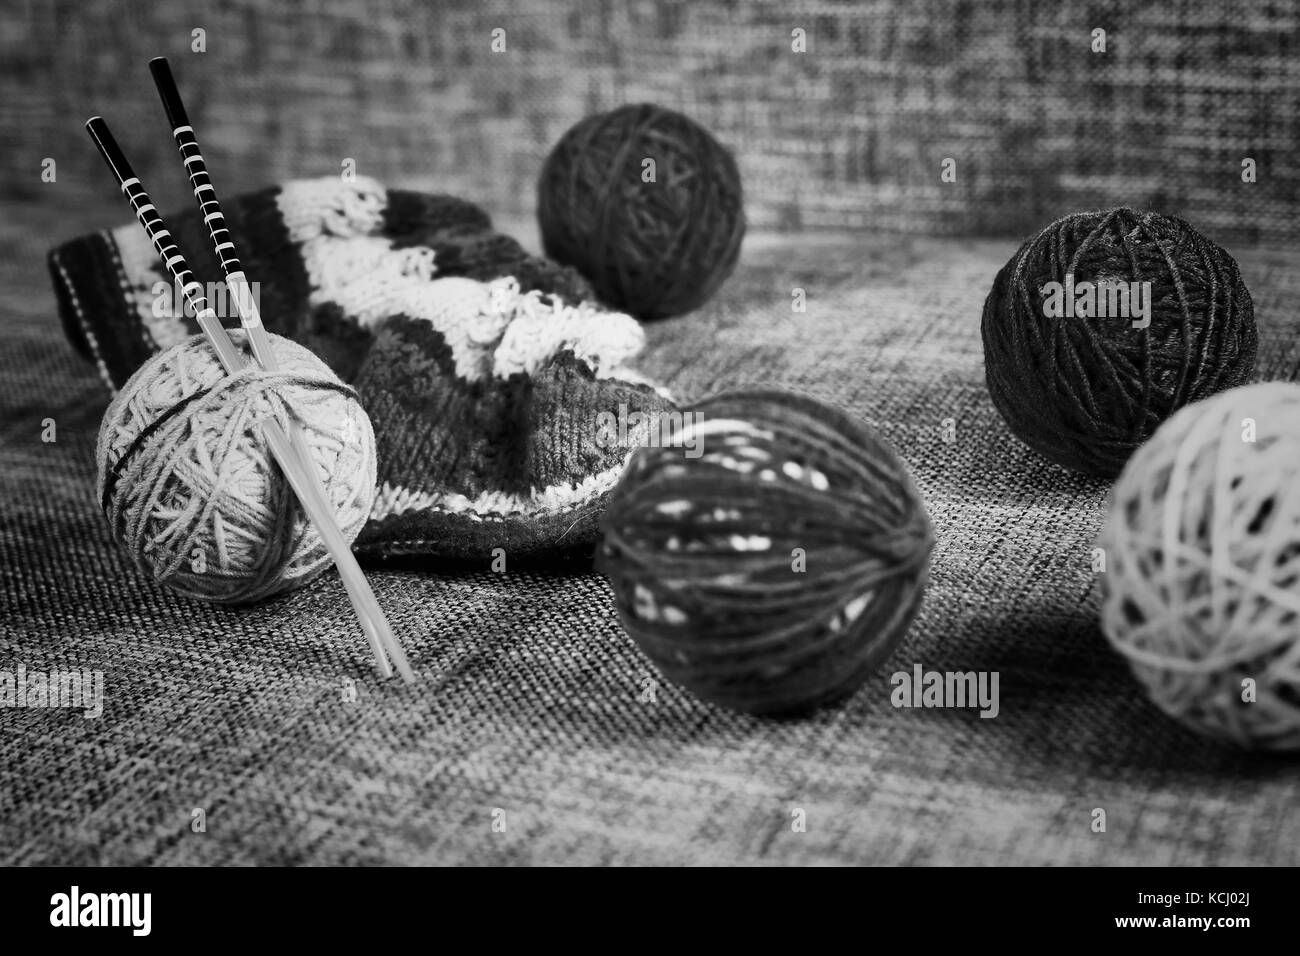 embroidery wool balls and knitting needles - Stock Image